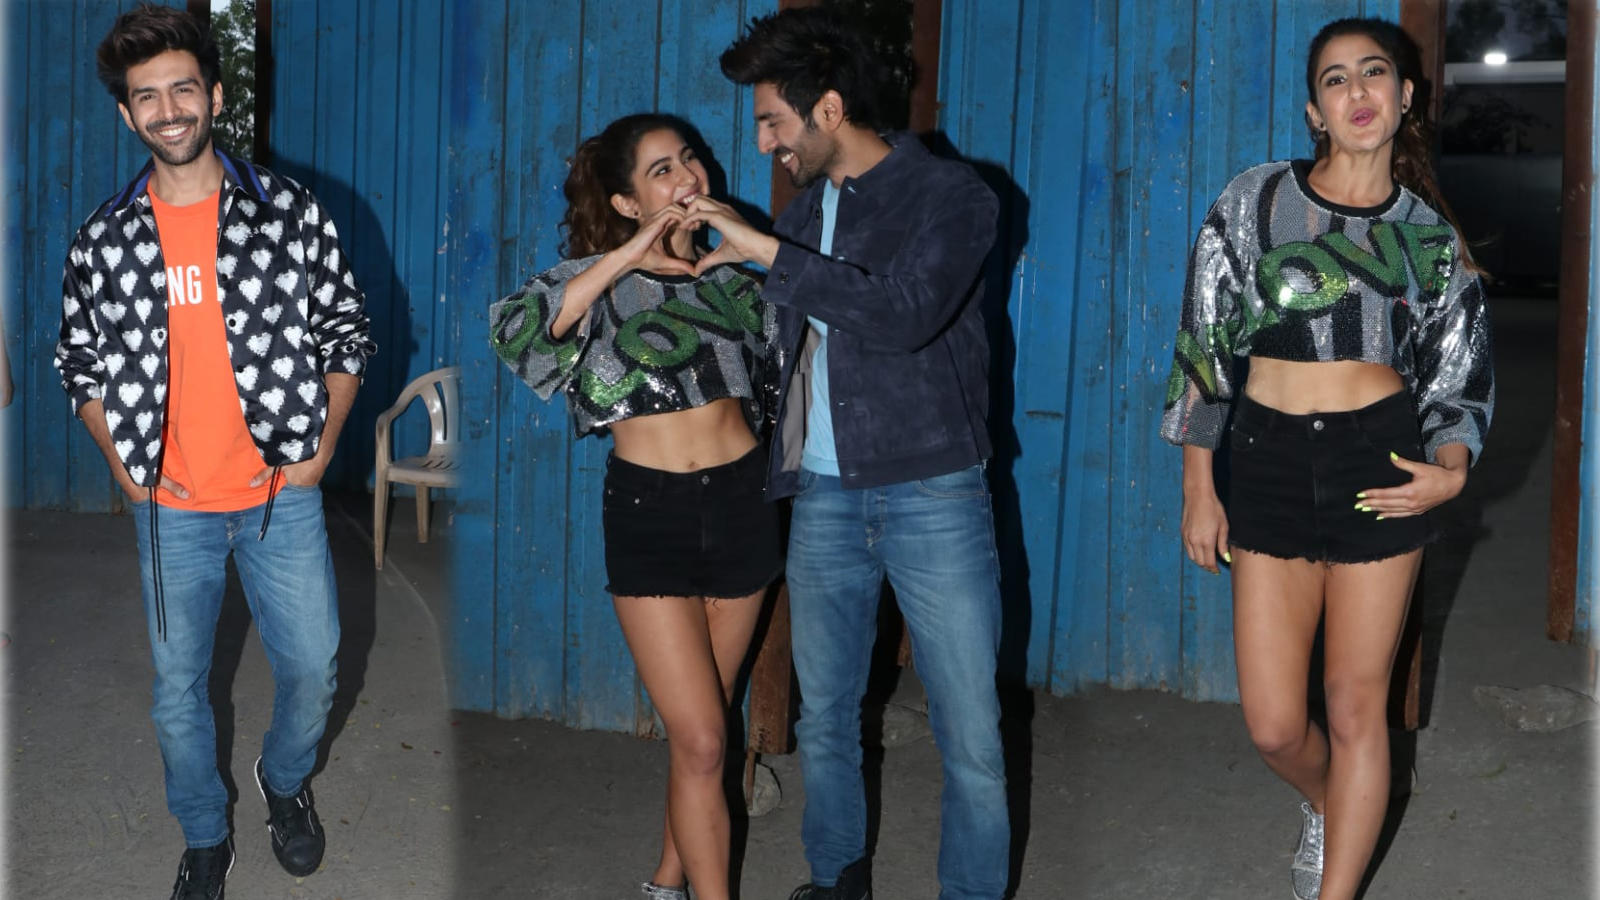 kartik-aaryan-sara-ali-khan-and-i-will-watch-love-aaj-kal-on-valentines-day